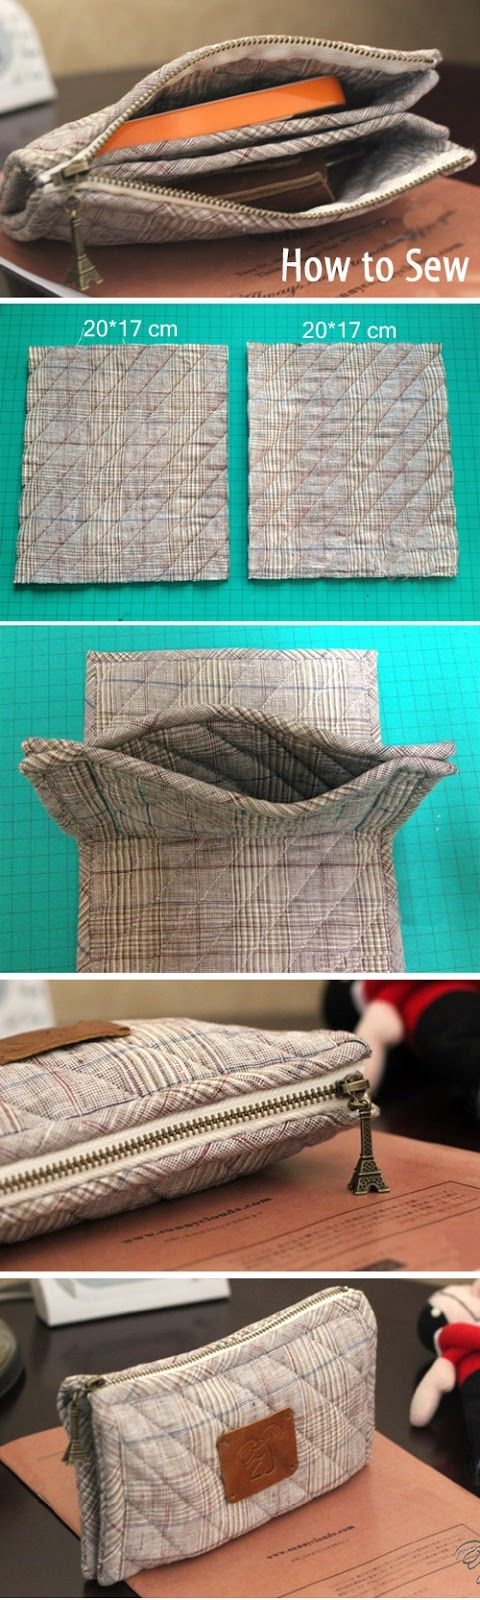 How to Sew Plain Quilted Wallet. DIY Photo Sewing Tutorial.  http://www.handmadiya.com/2016/01/quilted-wallet-tutorial.html: